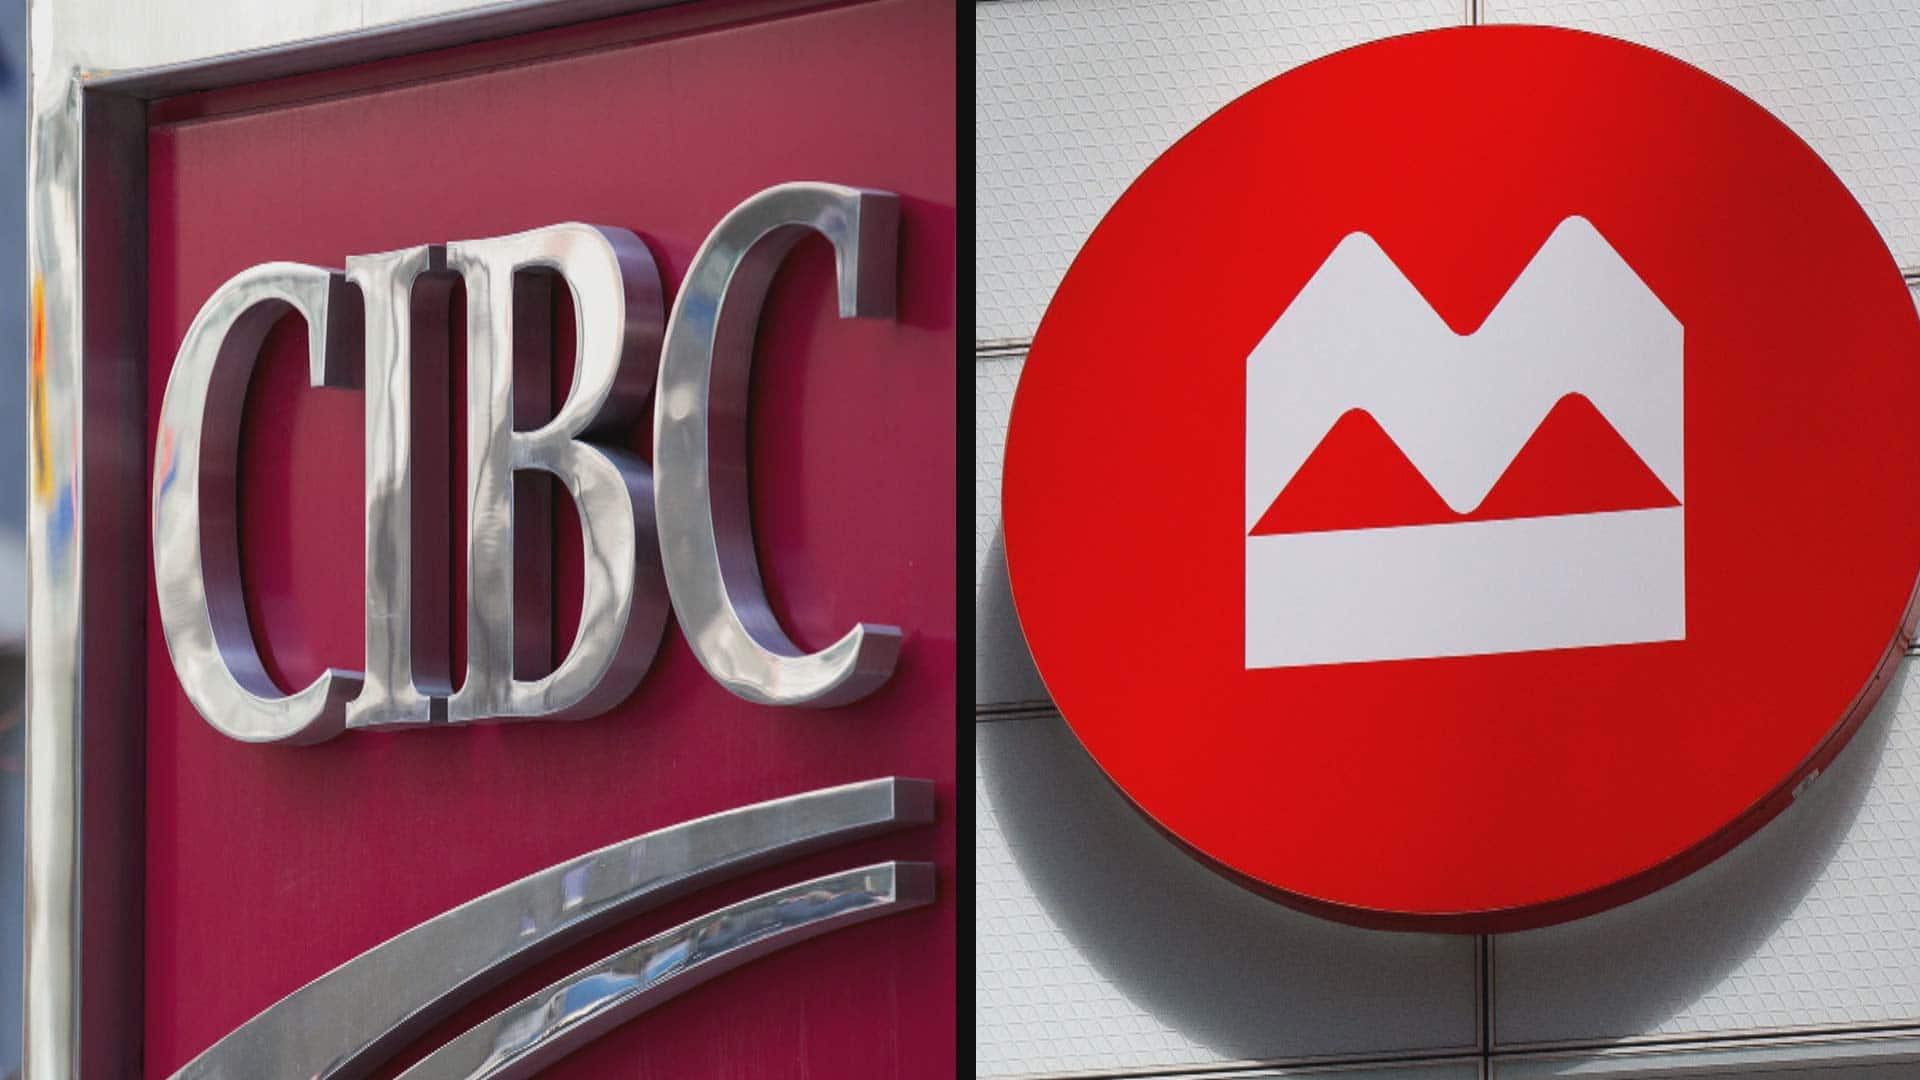 Customer data hacked at CIBC and Bank of Montreal - CBC Player